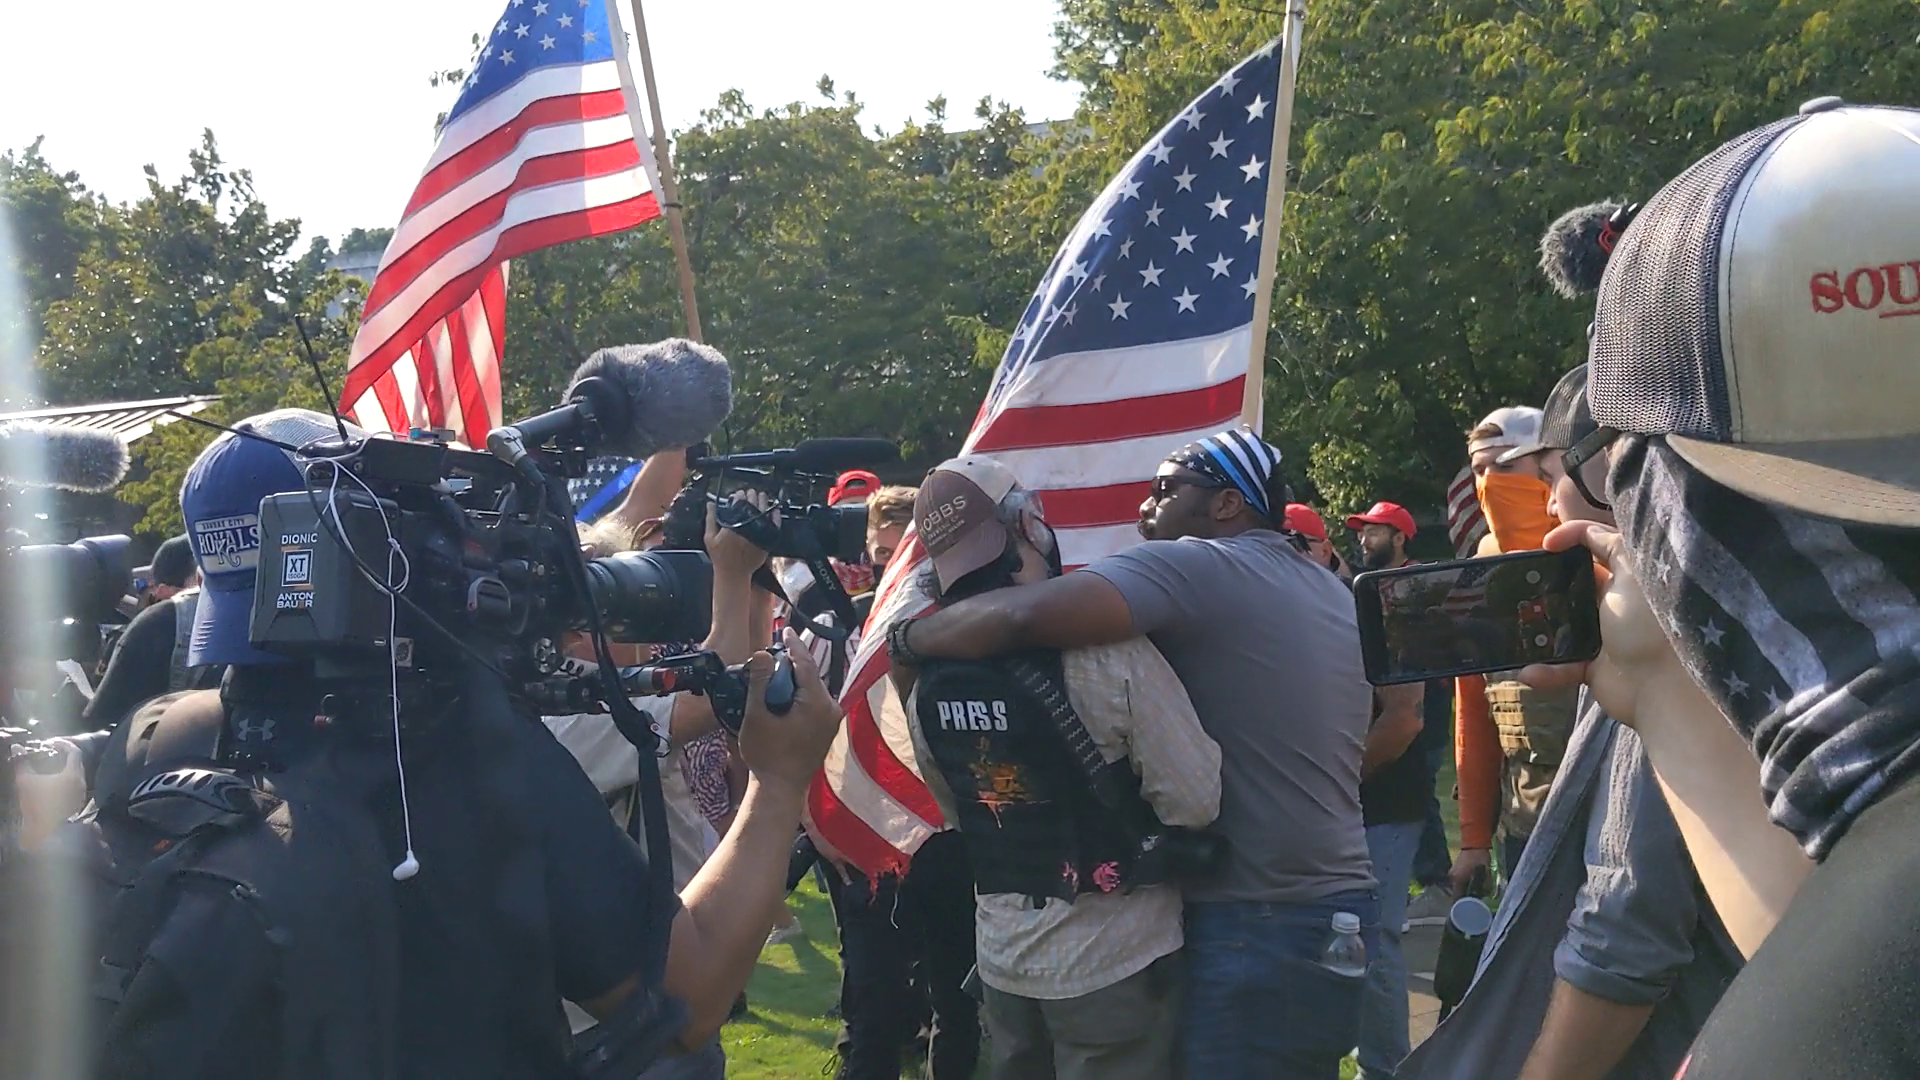 A black man in a Blue Lives Matter bandana embraces and shouts at a reporter visibly leaning back